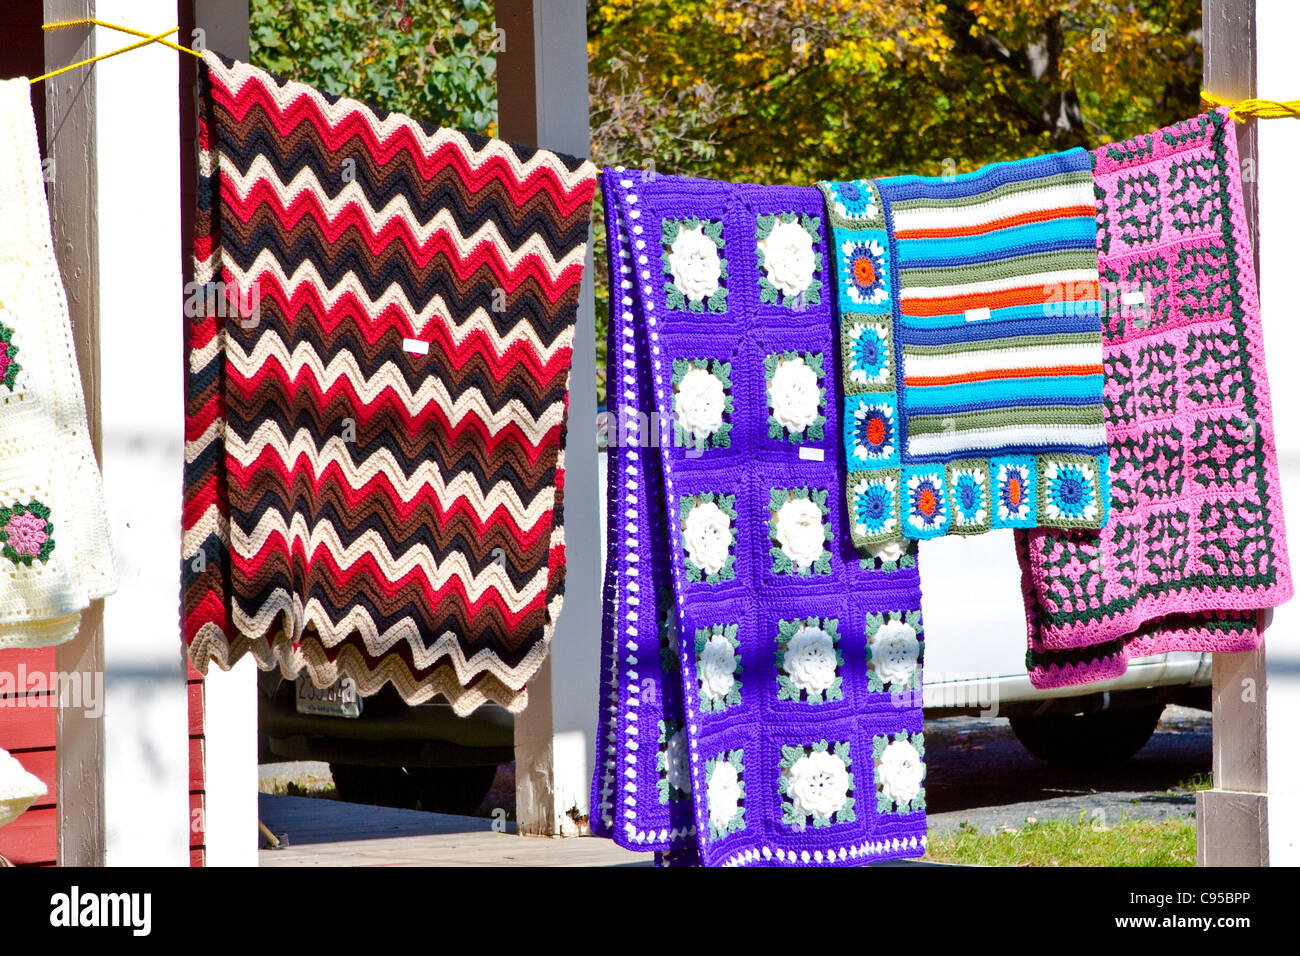 Colorful quilts hang on a porch - Stock Image